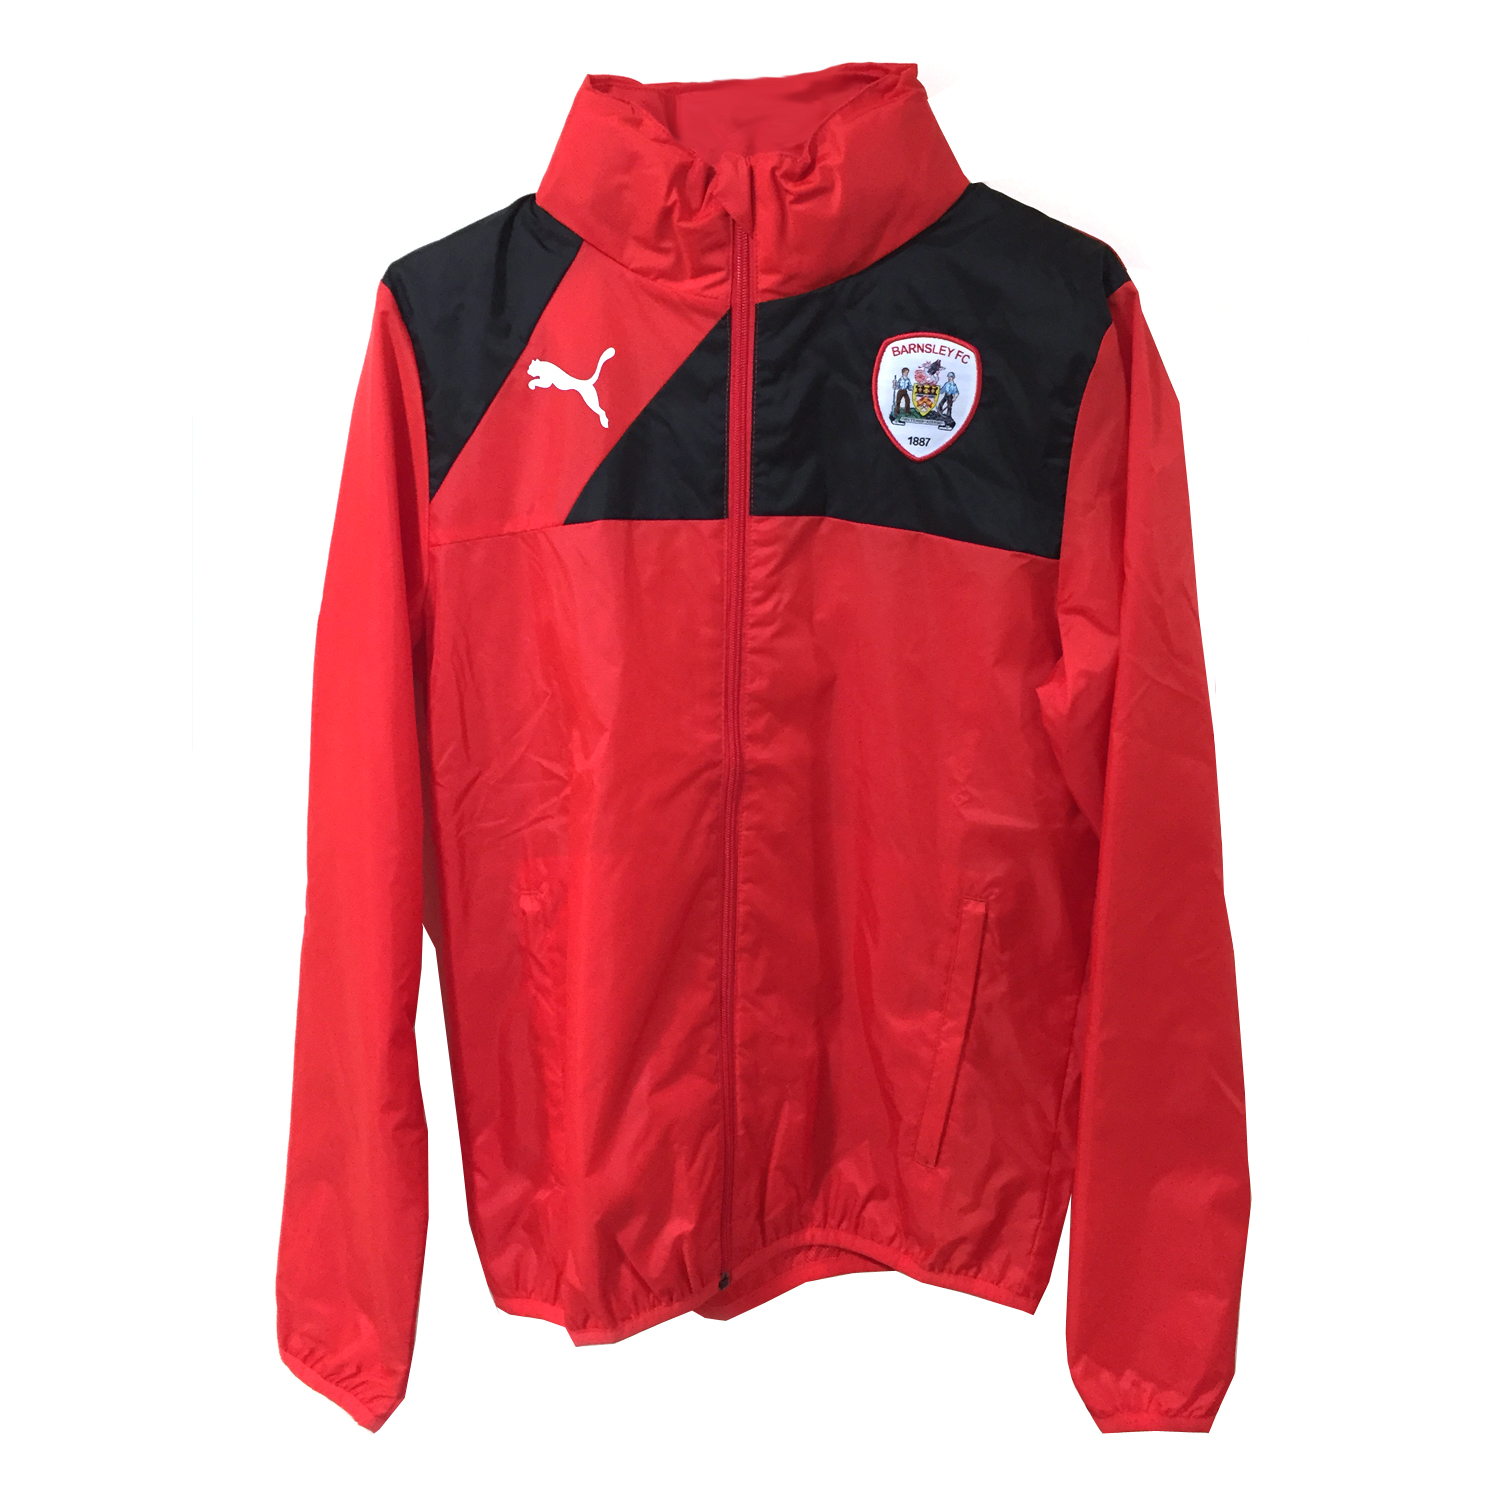 Puma Adult Red Rain Jacket